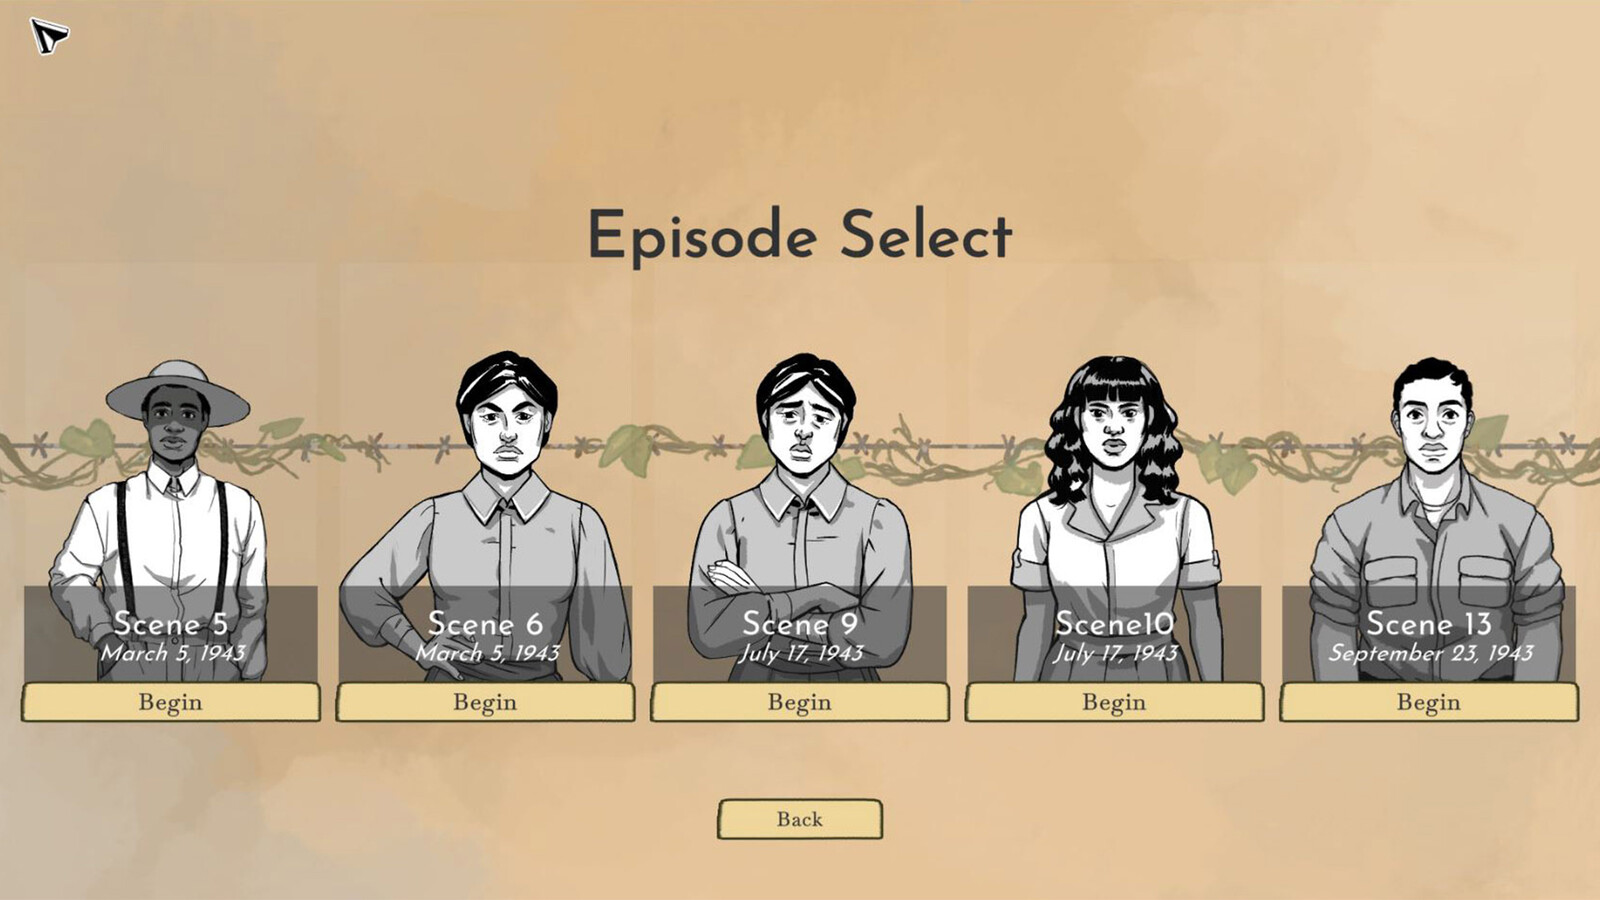 Episode Select - Our initial release is a subset of the full set of episodes we would like to release in the future.